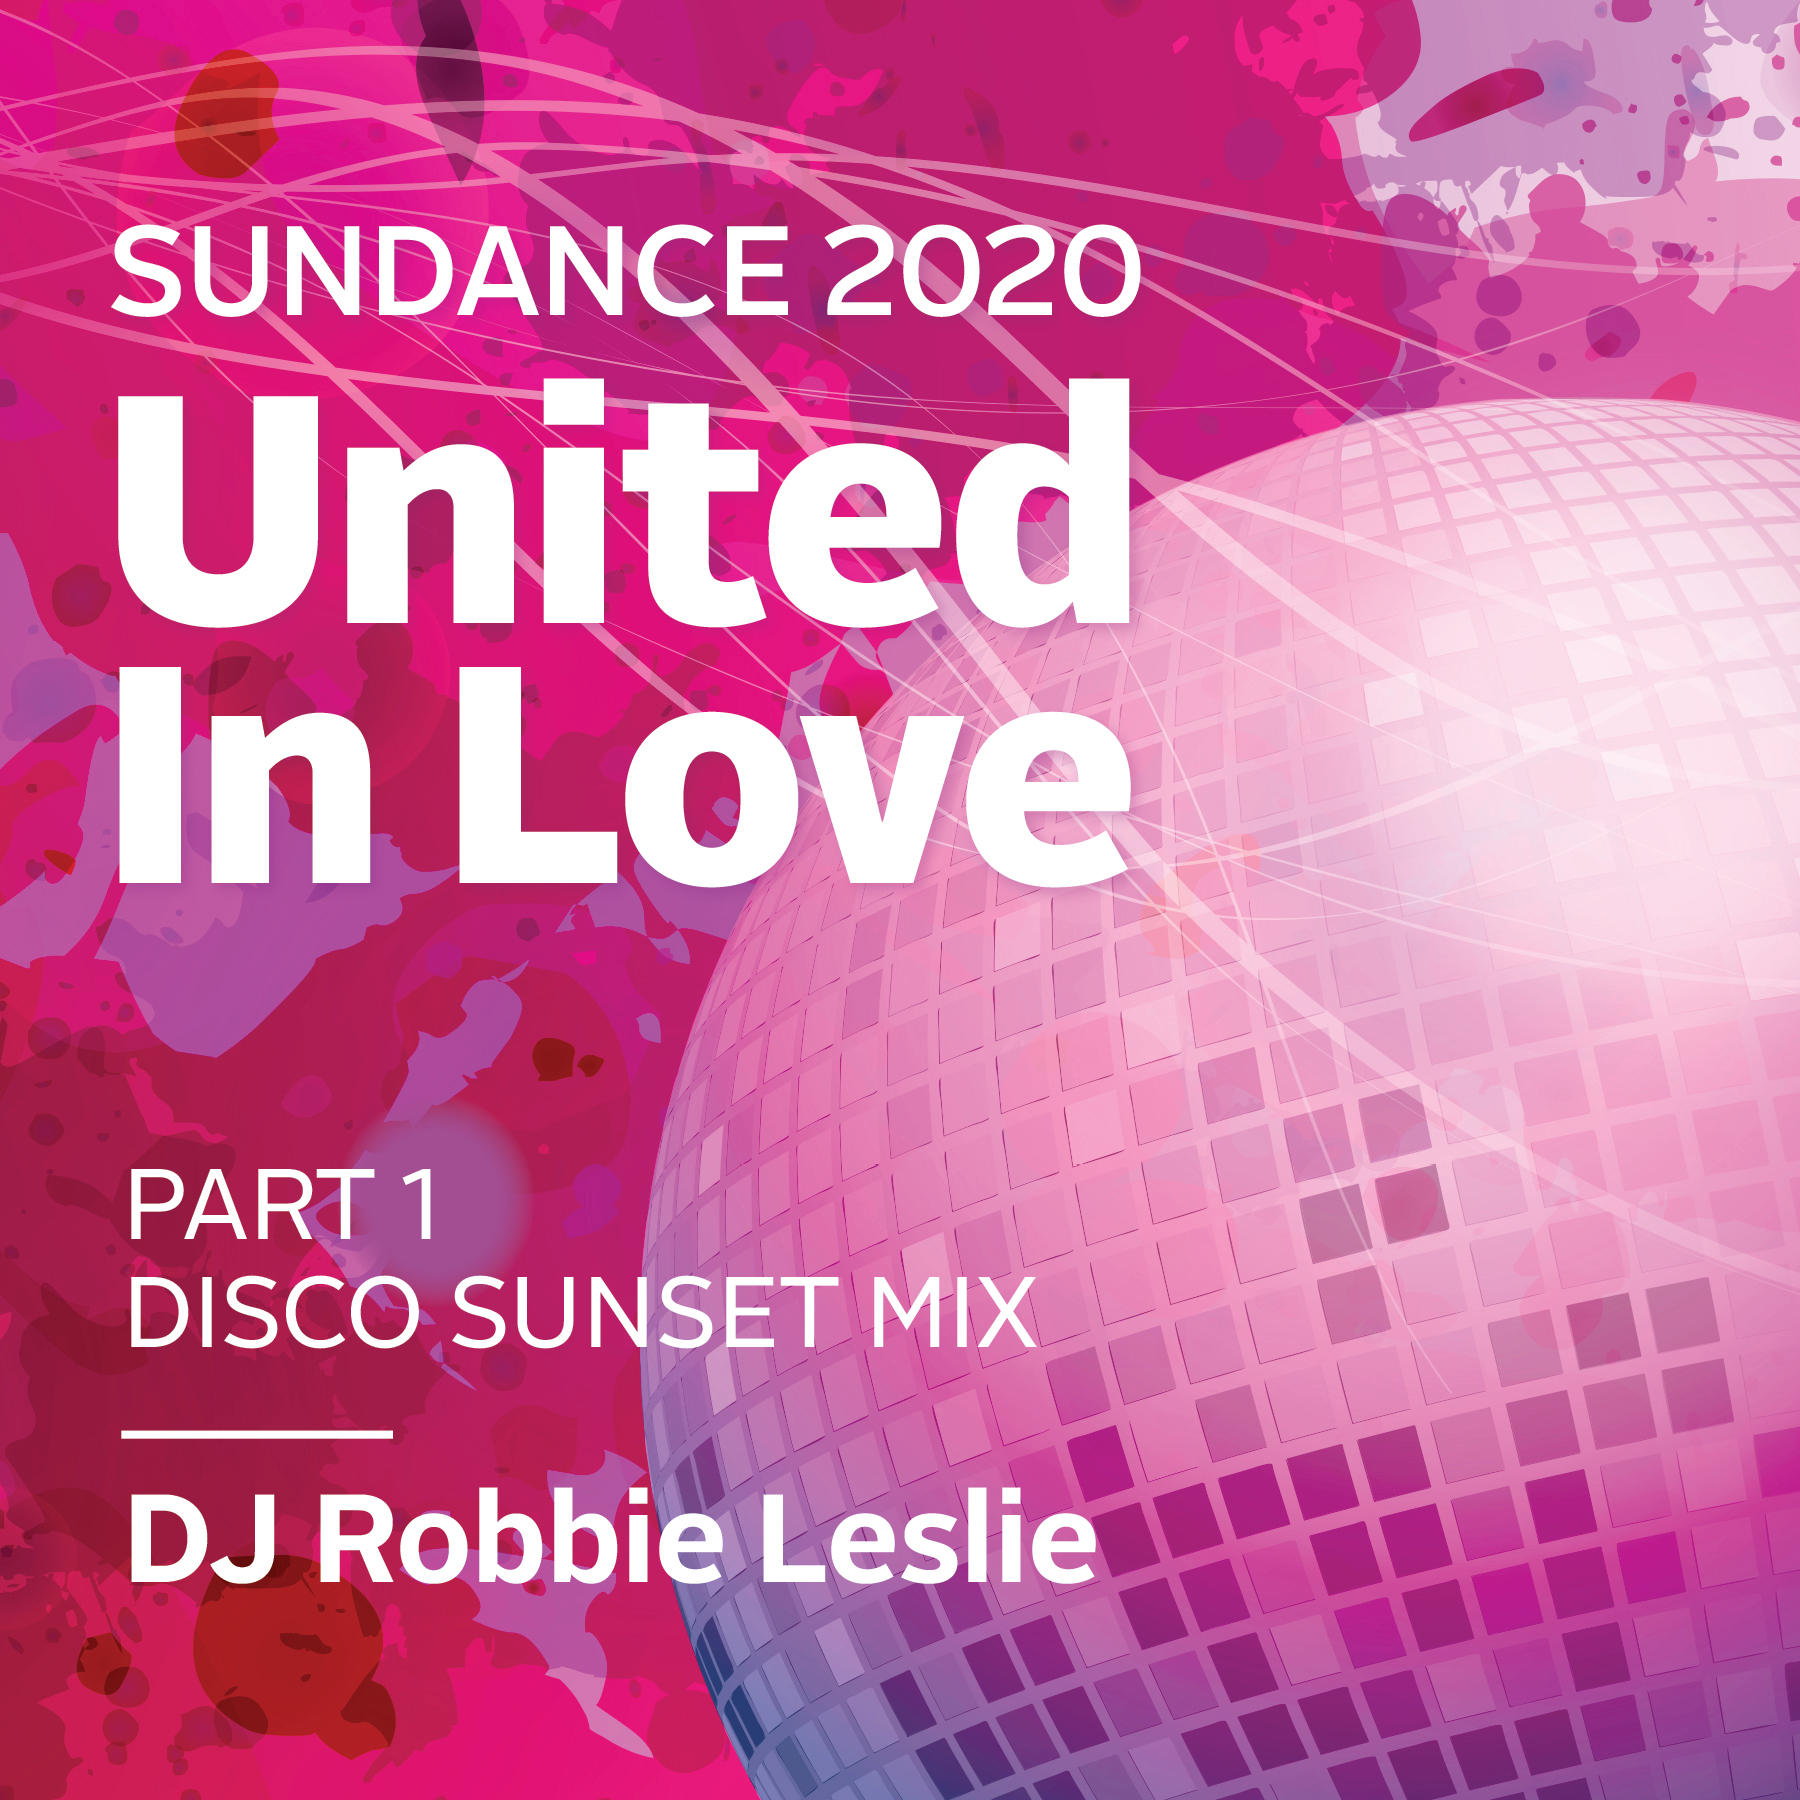 Disco Sunset Mix